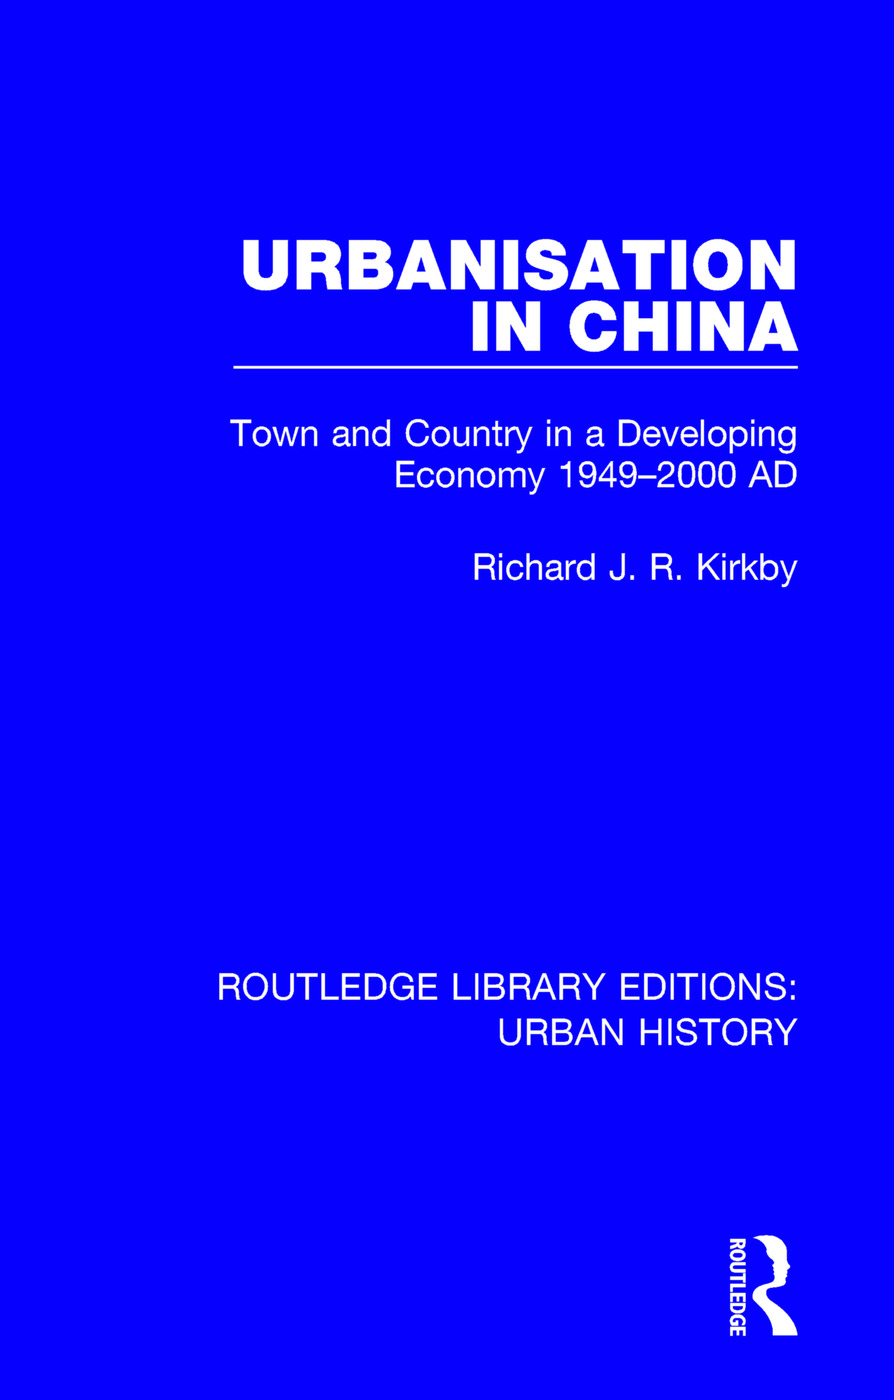 Urbanization in China: Town and Country in a Developing Economy 1949-2000 AD book cover